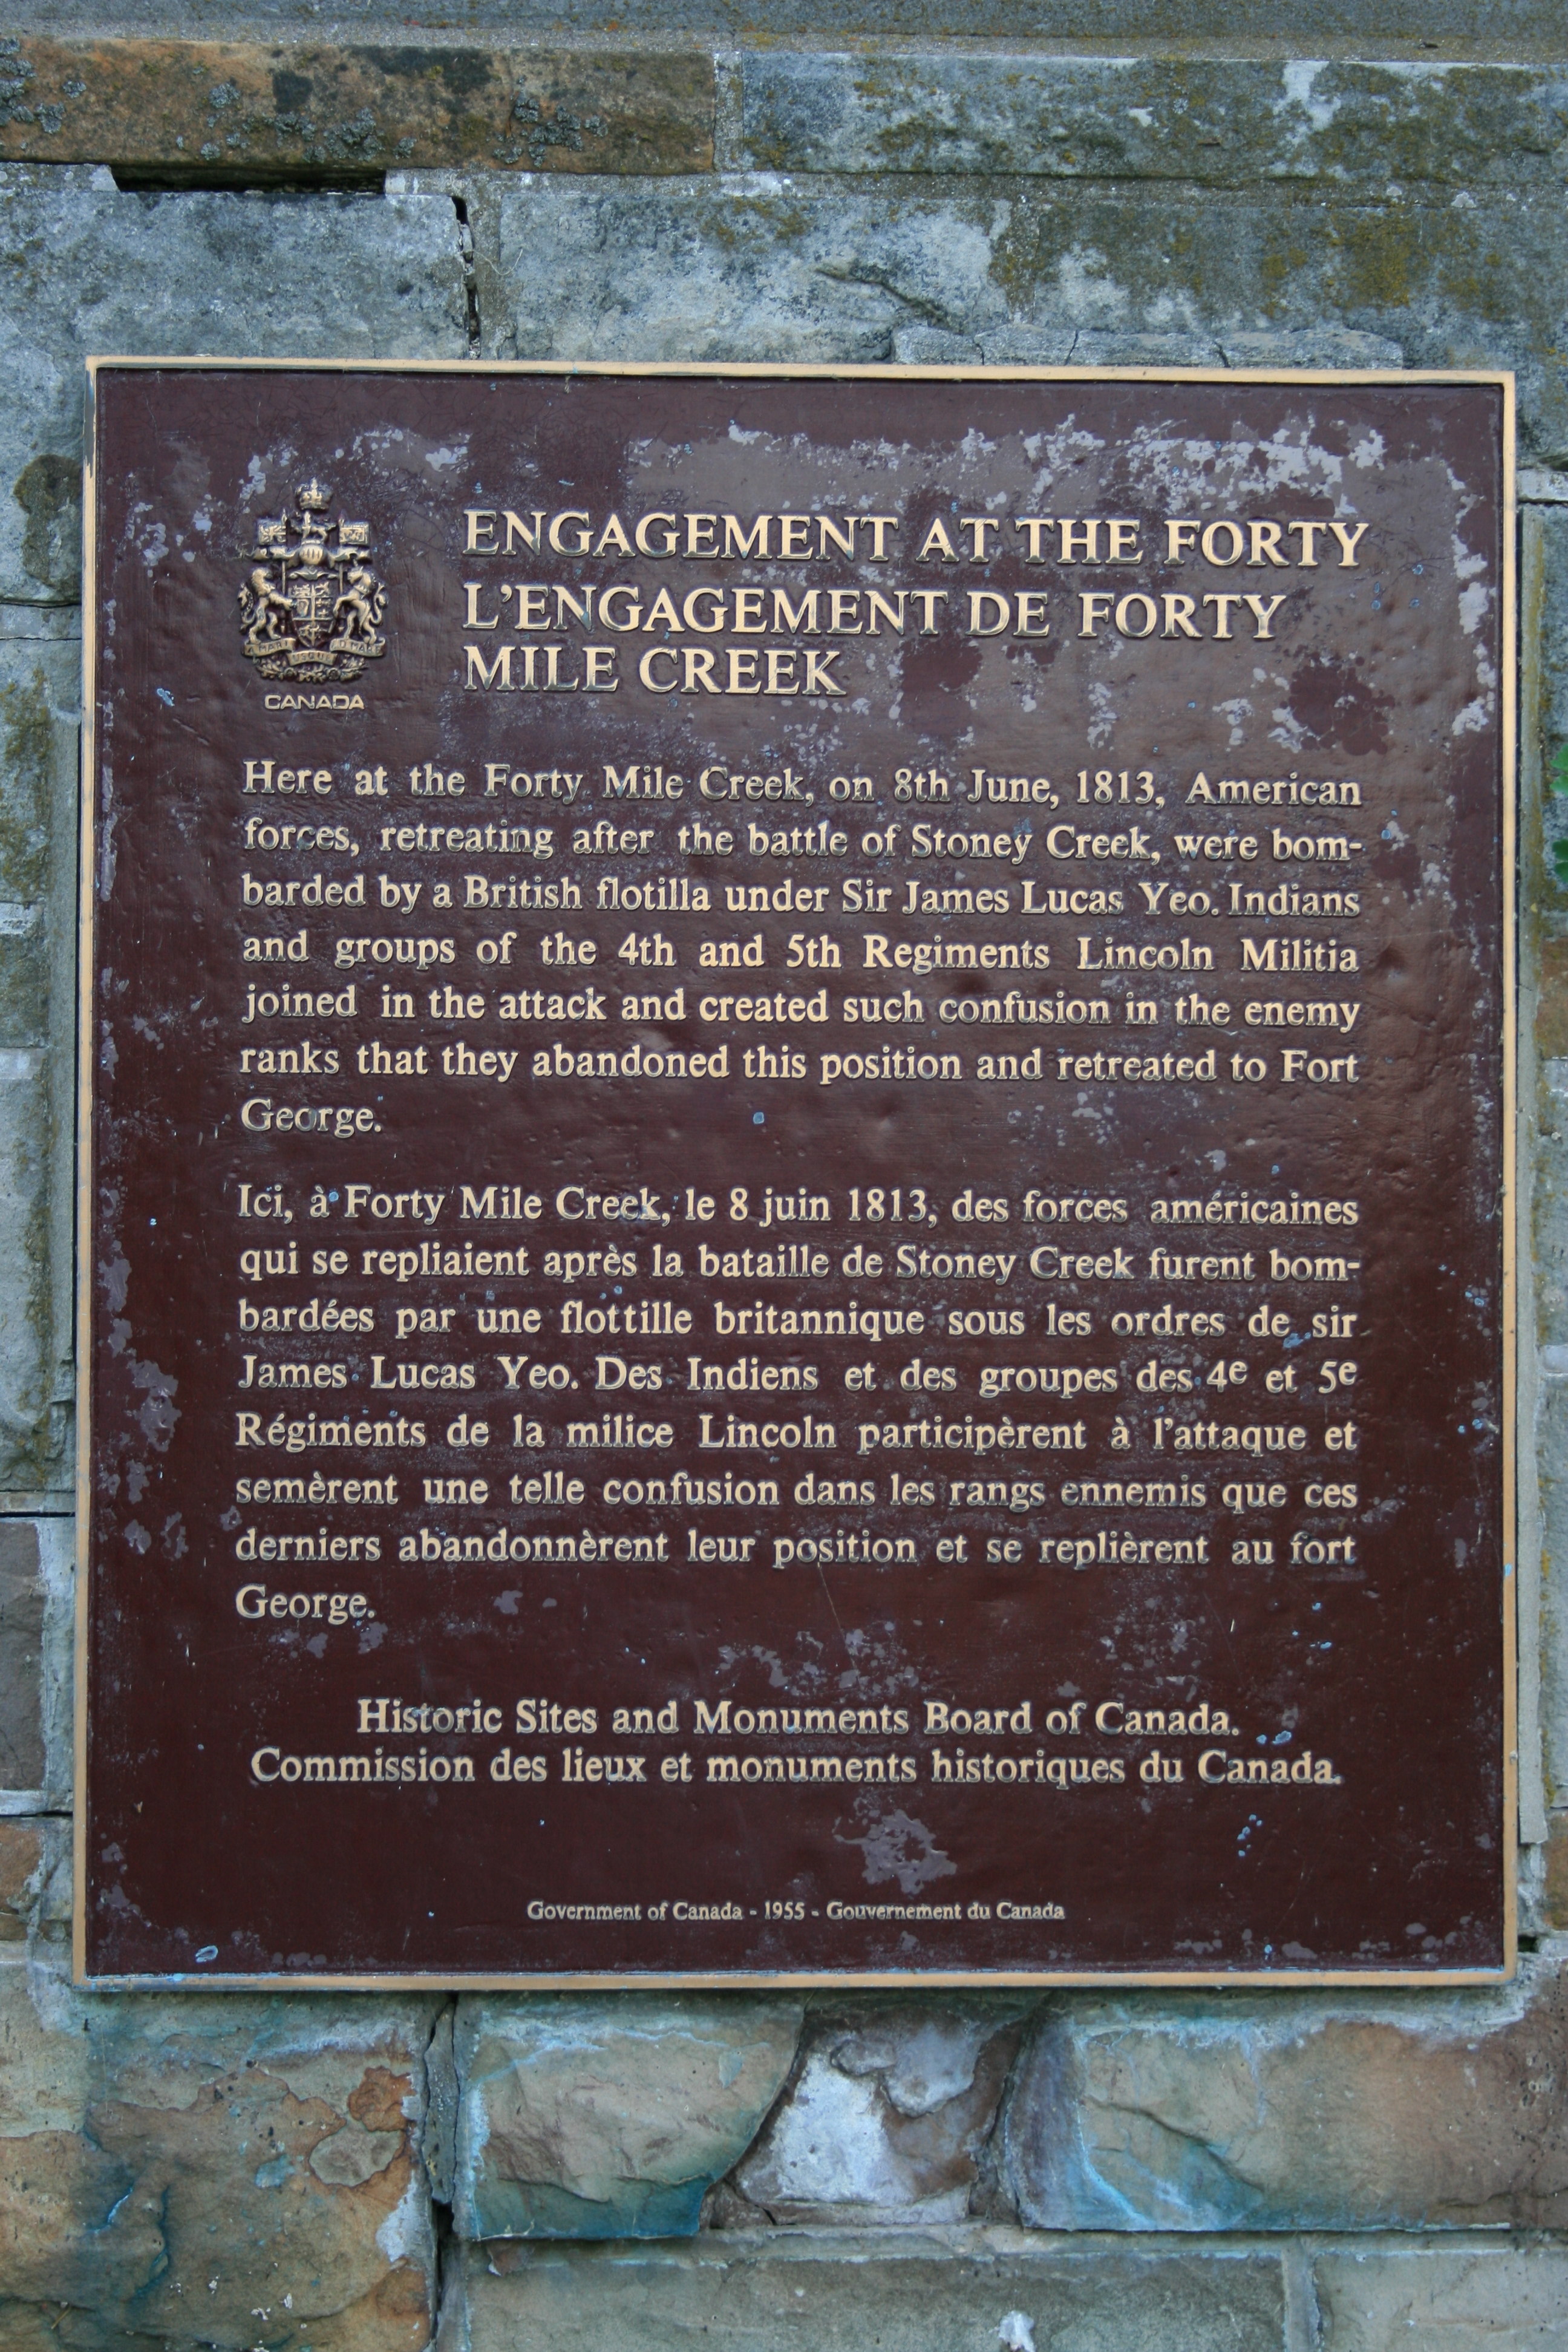 Engagement at the Forty Marker